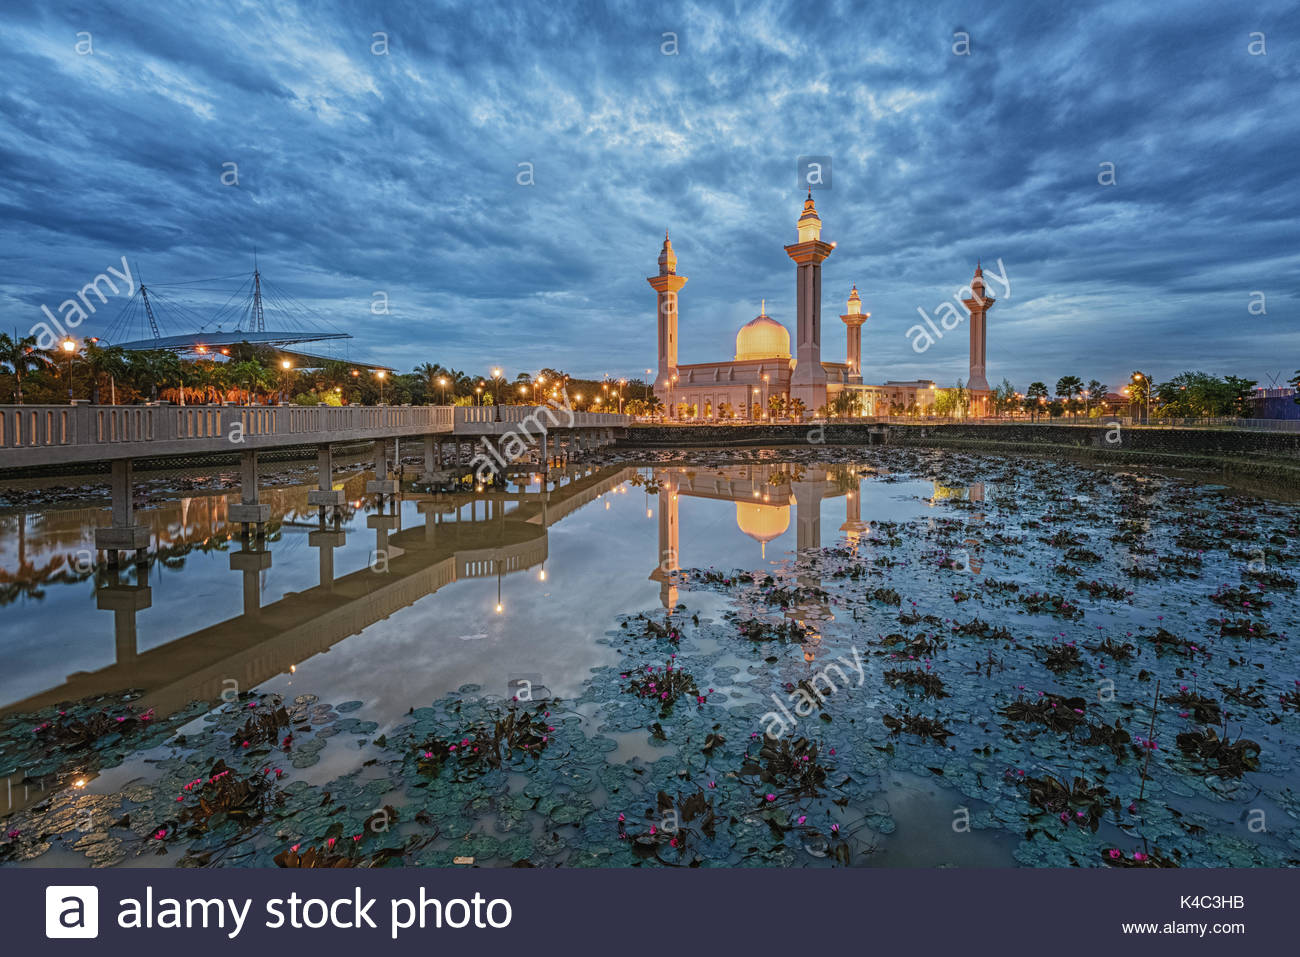 Malaysia's mosques - Stock Image